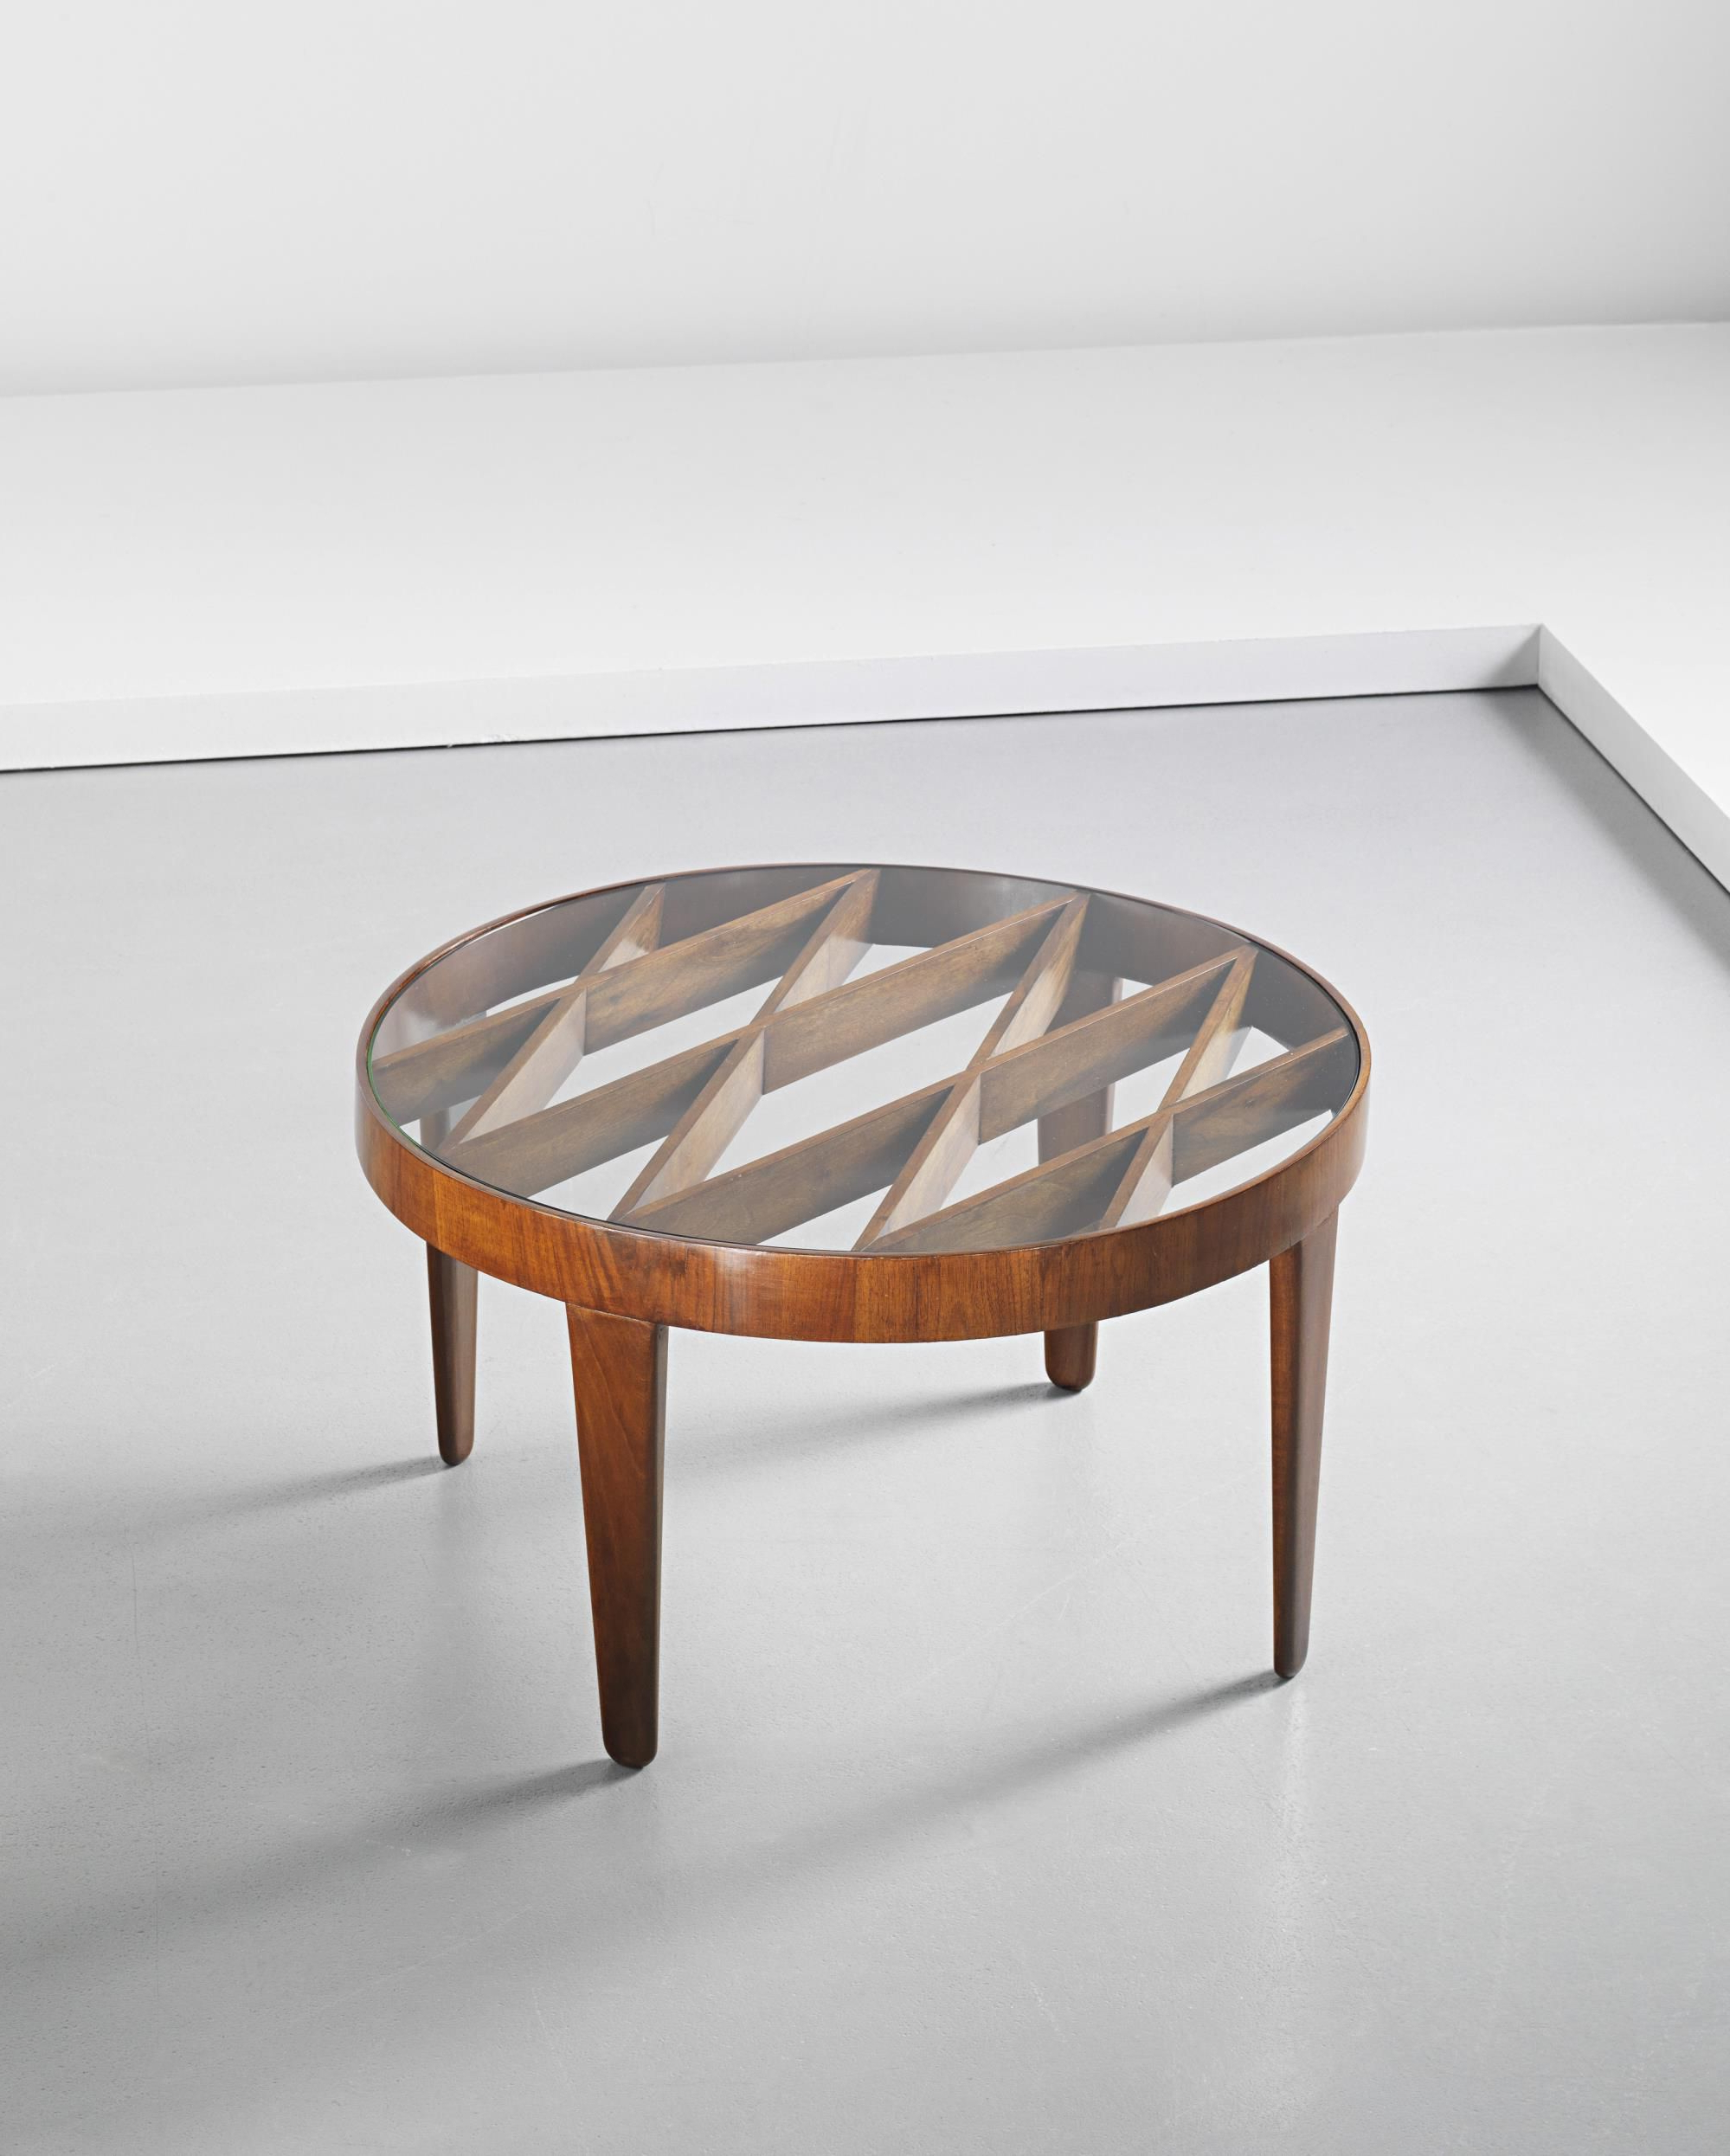 Phillip Brass Console Tables With Well Known Phillips : Uk050212, Gio Ponti, Coffee Table (View 13 of 20)